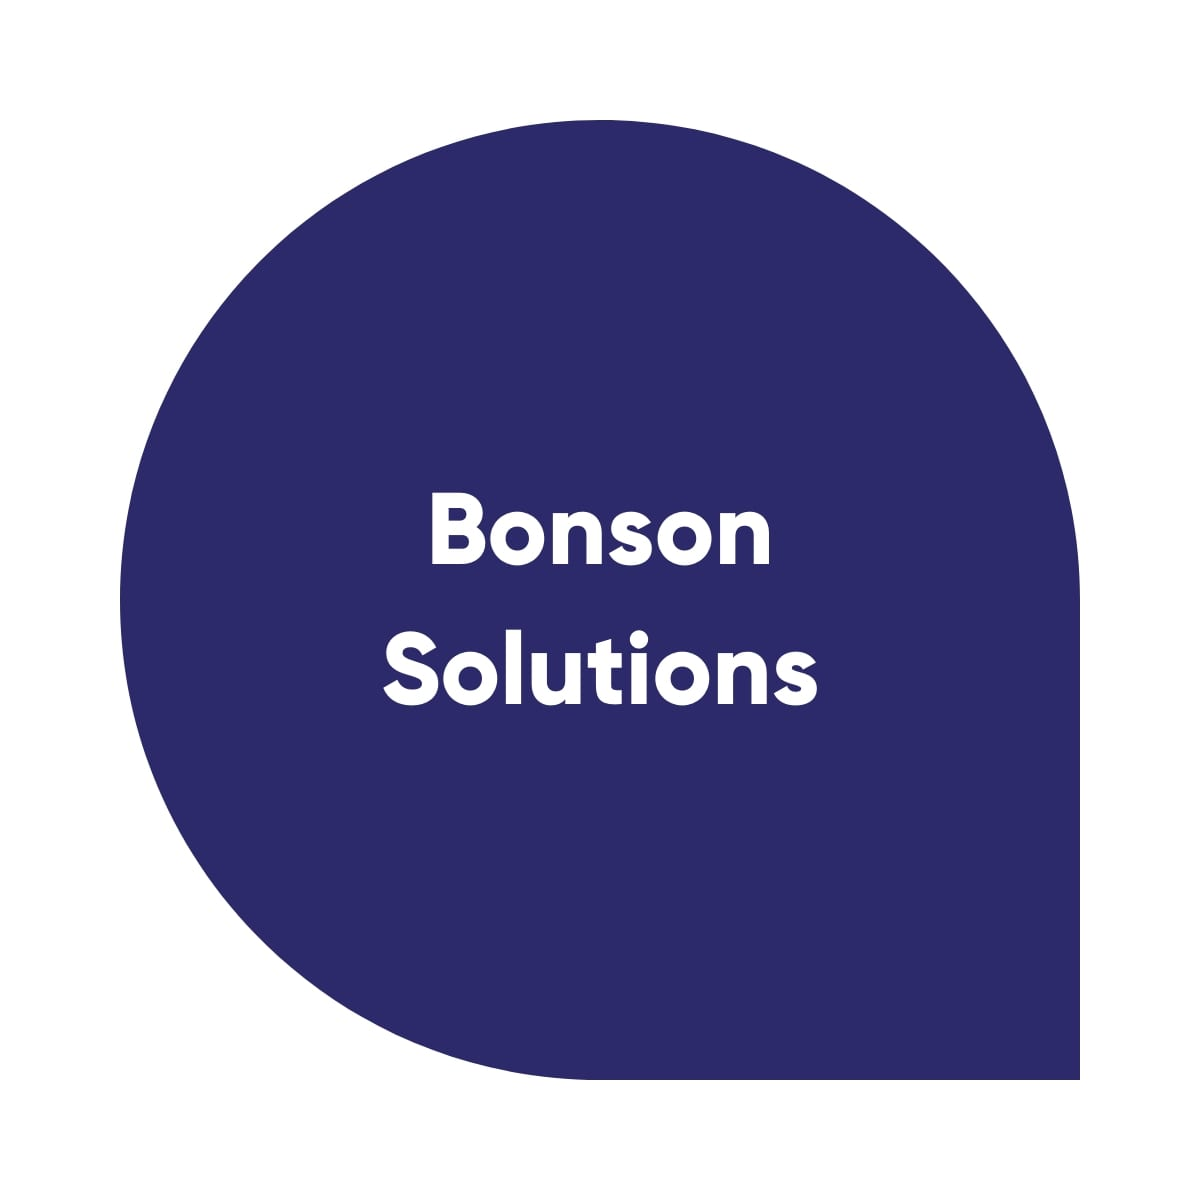 Bonson_solutions-teardot